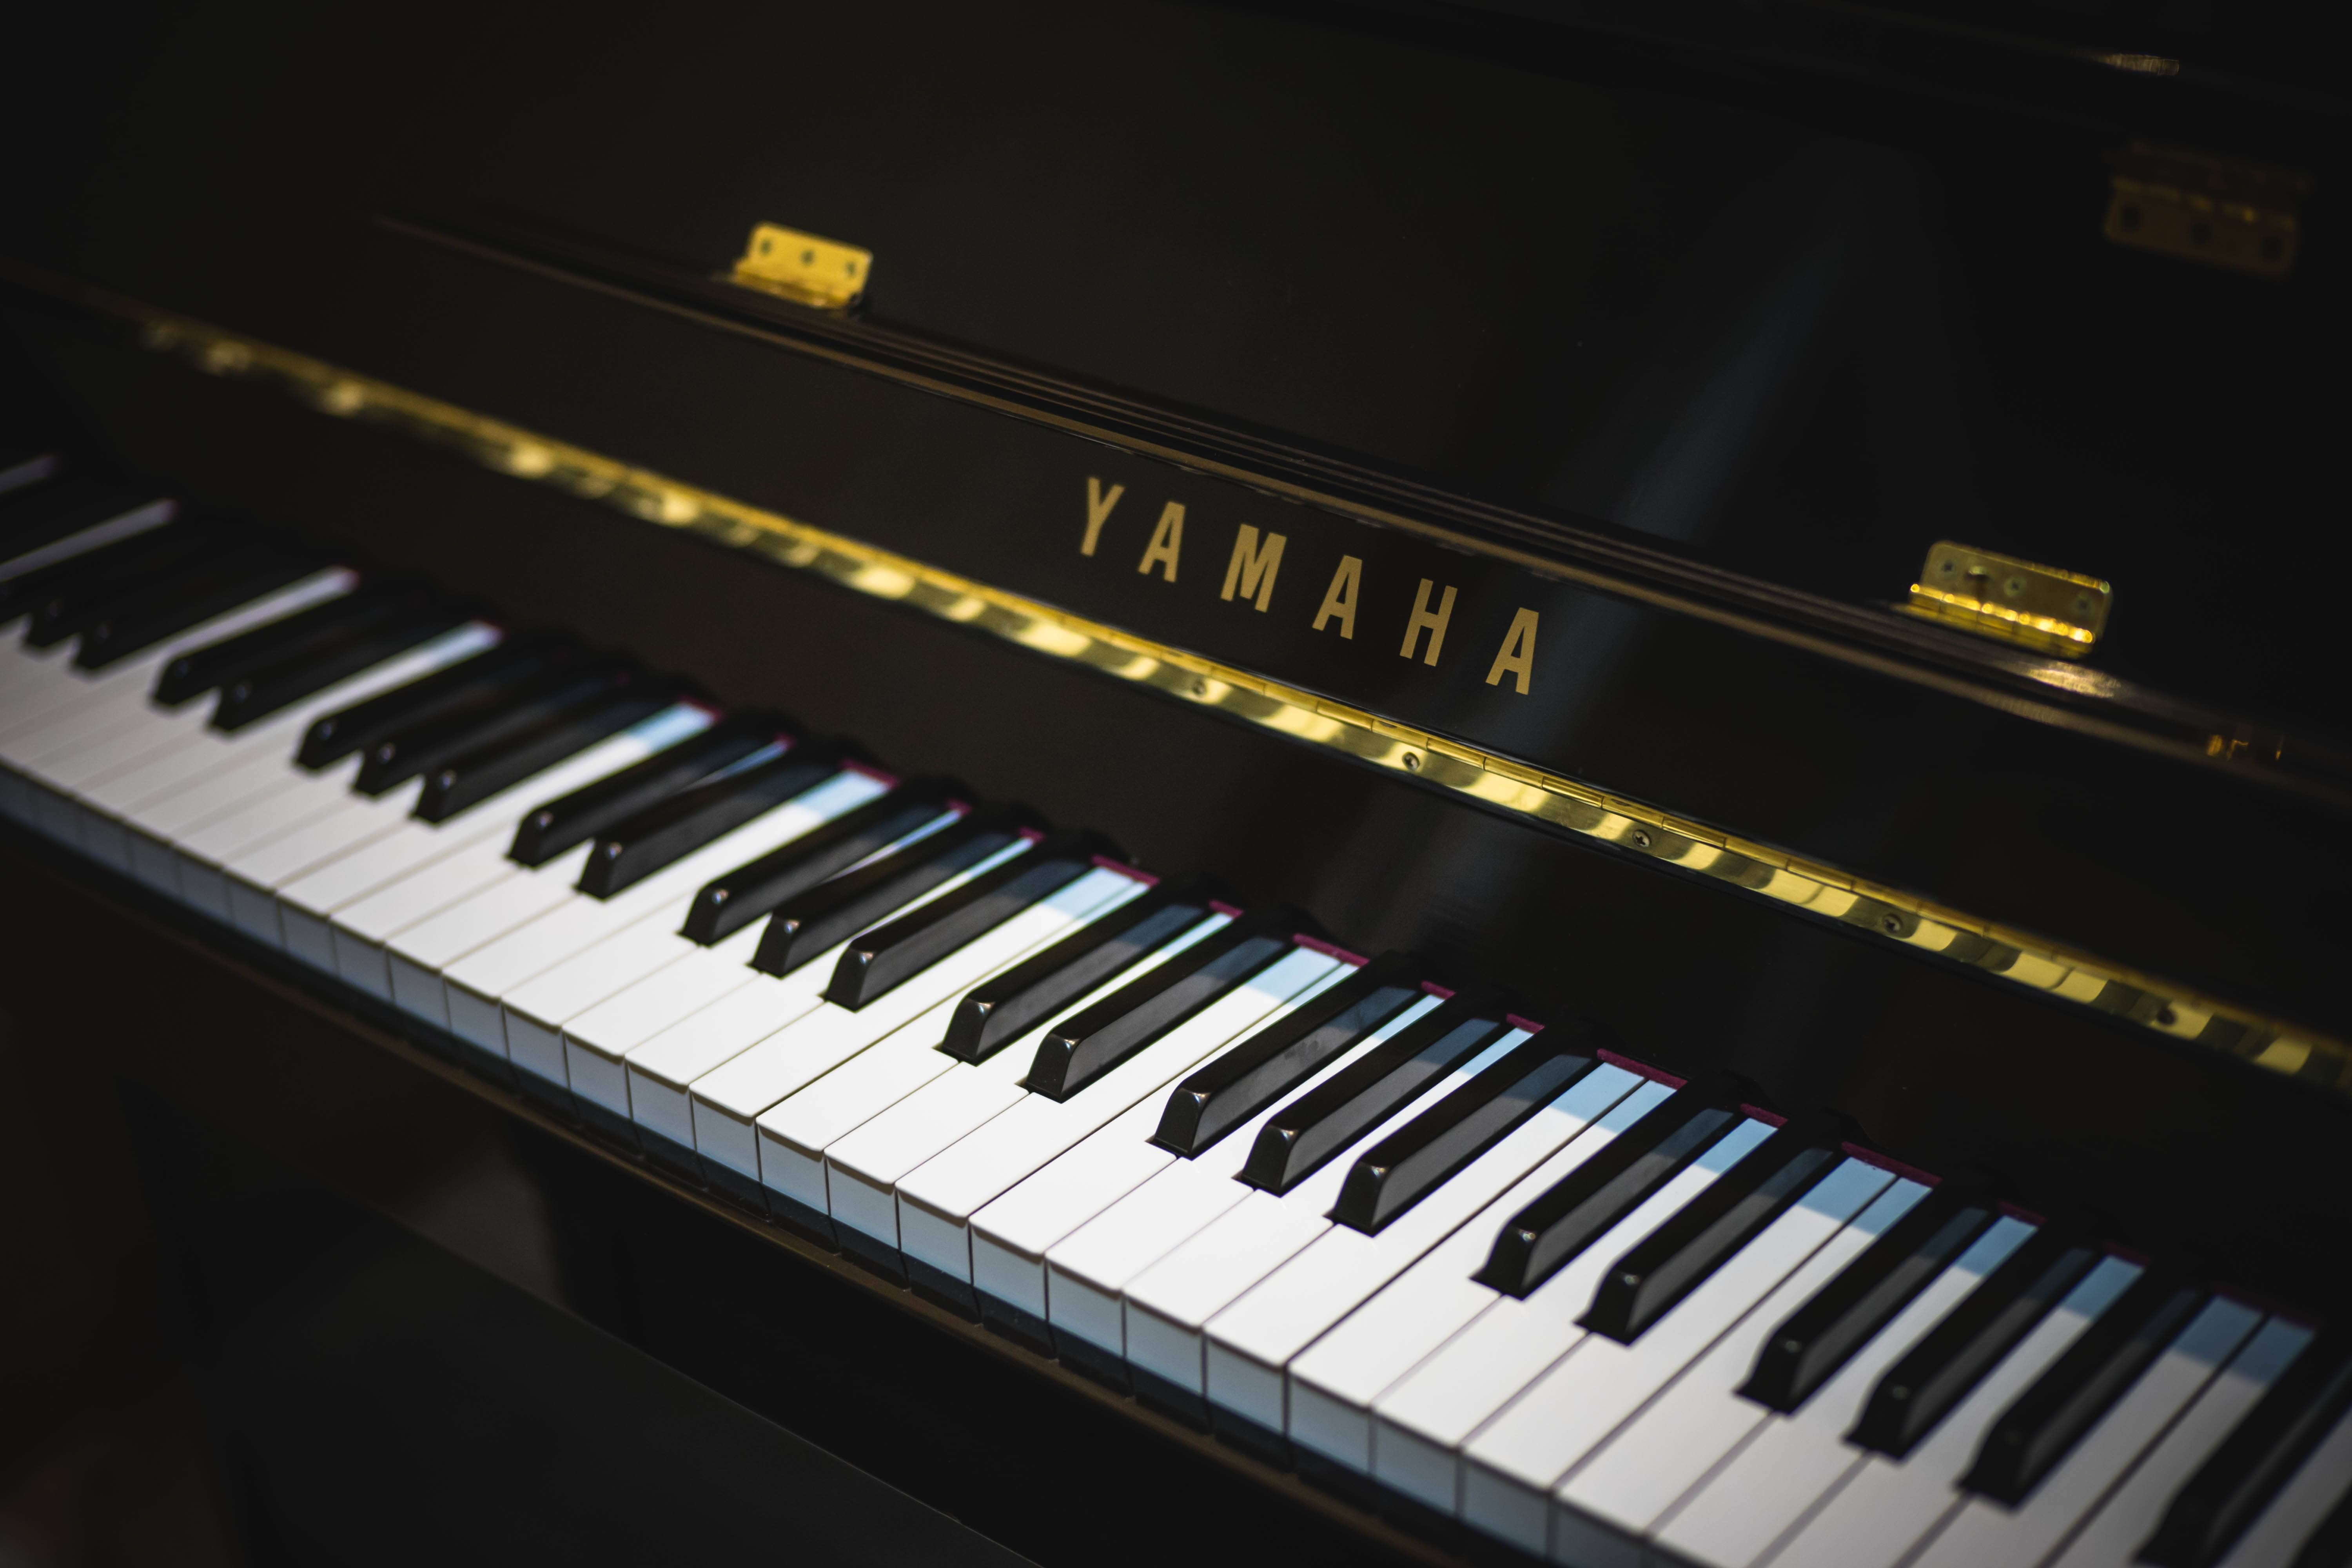 How to Safely Whiten Piano Keys